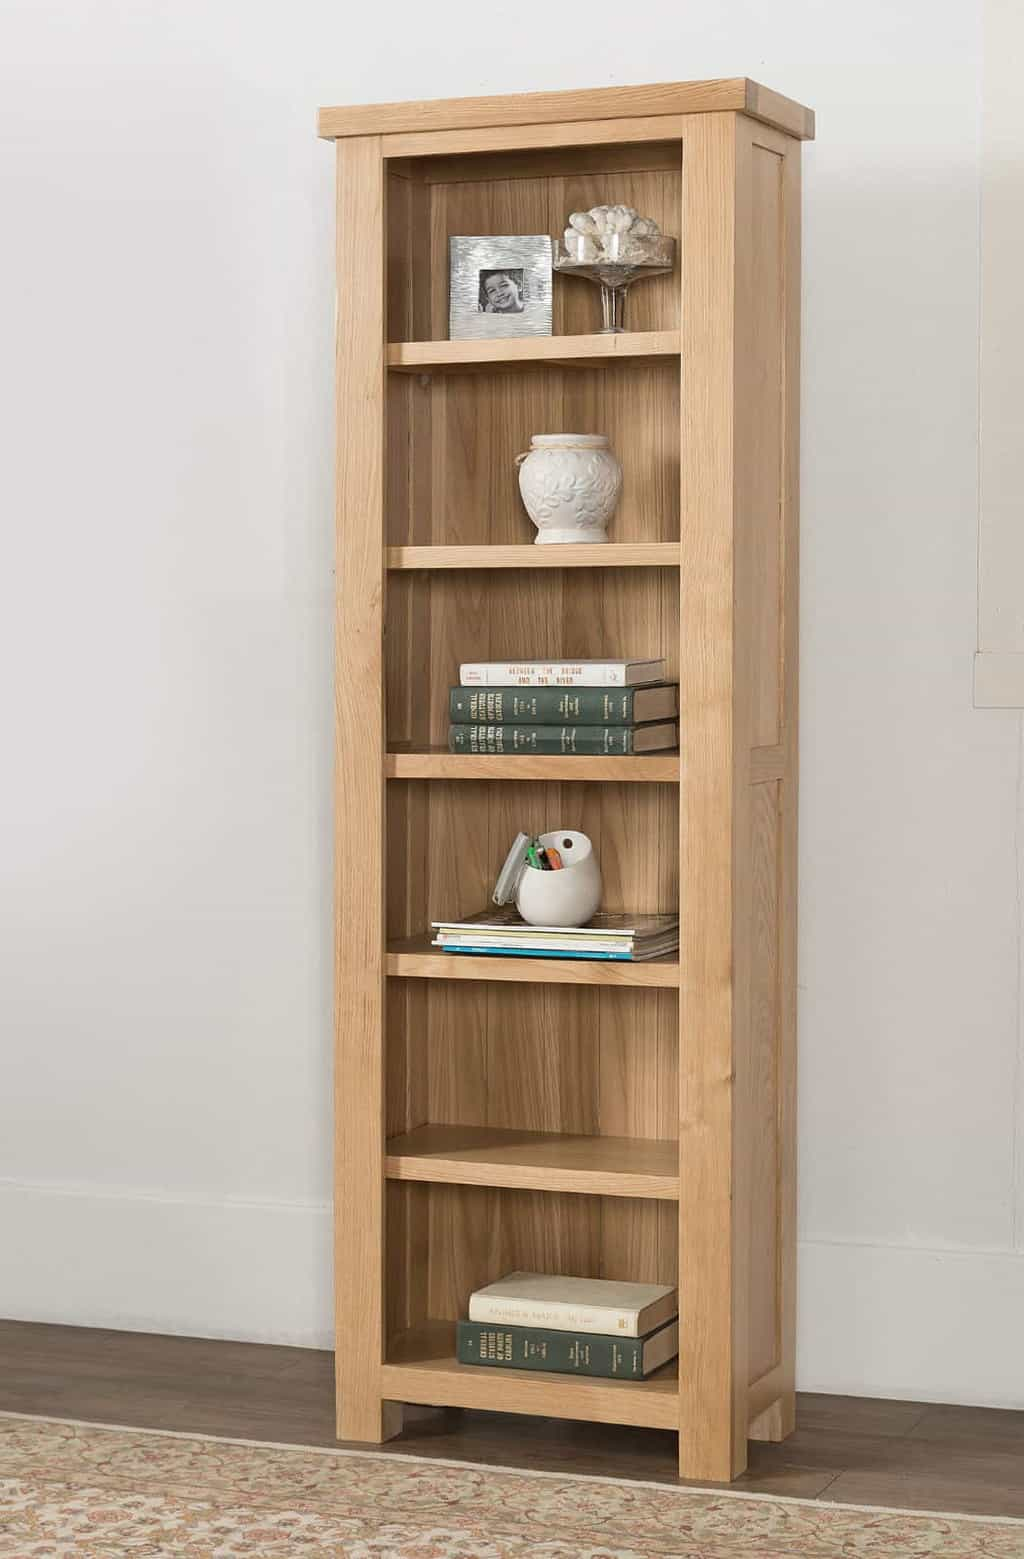 Valencia Solid Wood Chunky Oak Slim Narrow Open Bookcase Display Unit